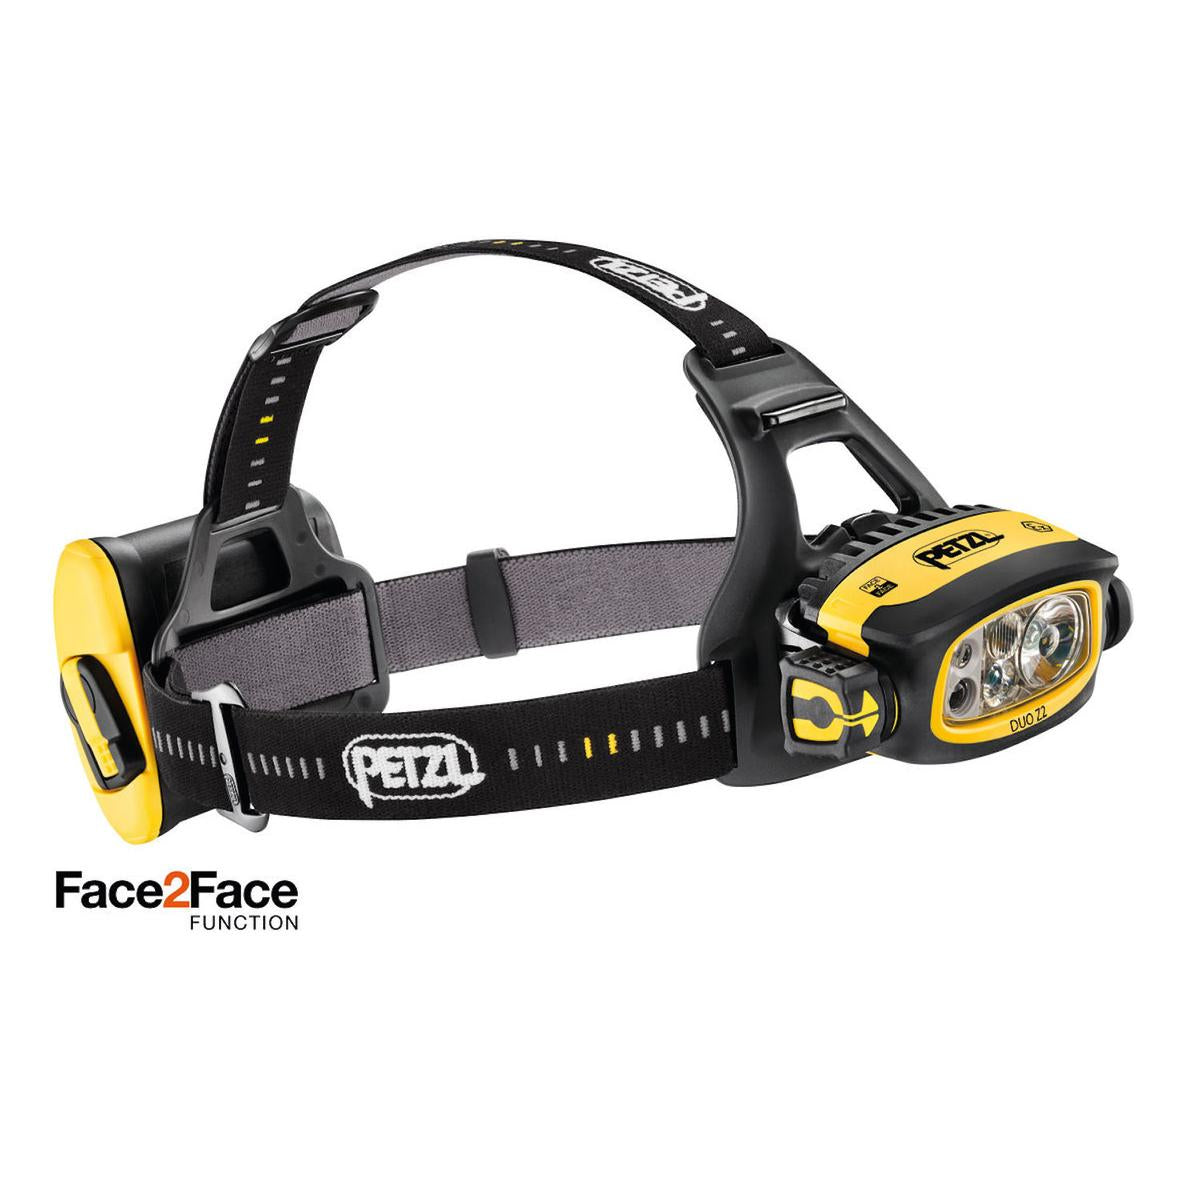 Petzl DUO Z2 430 Lumens Headlamp